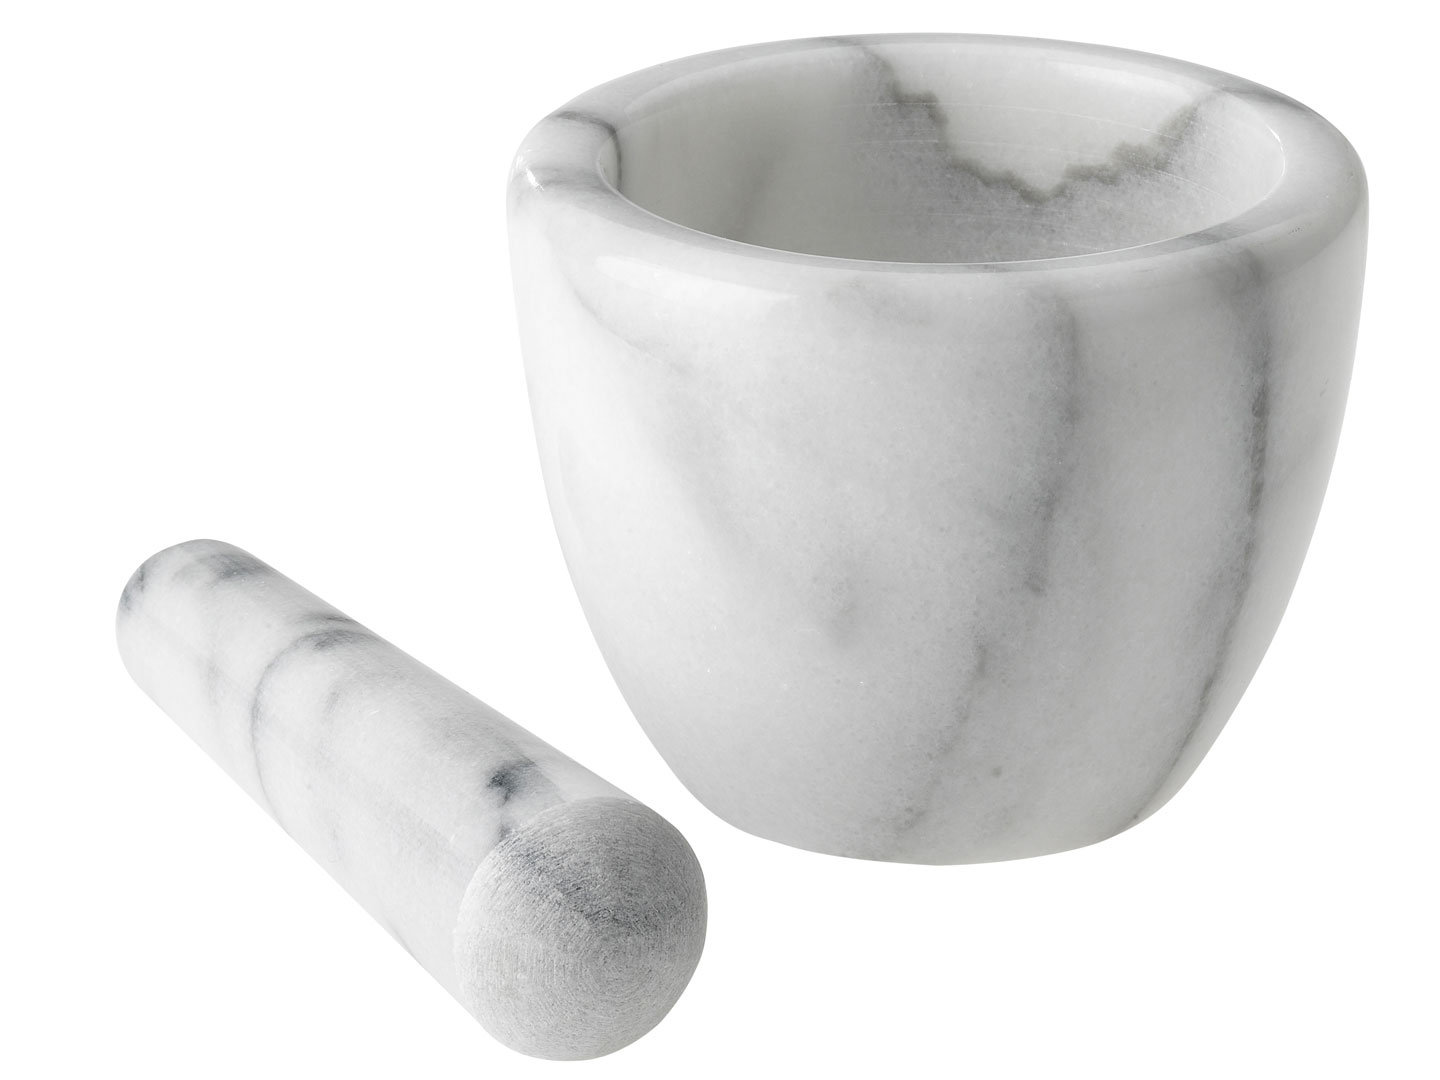 WESTMARK marble mortar GOURMET 10 cm with pestle